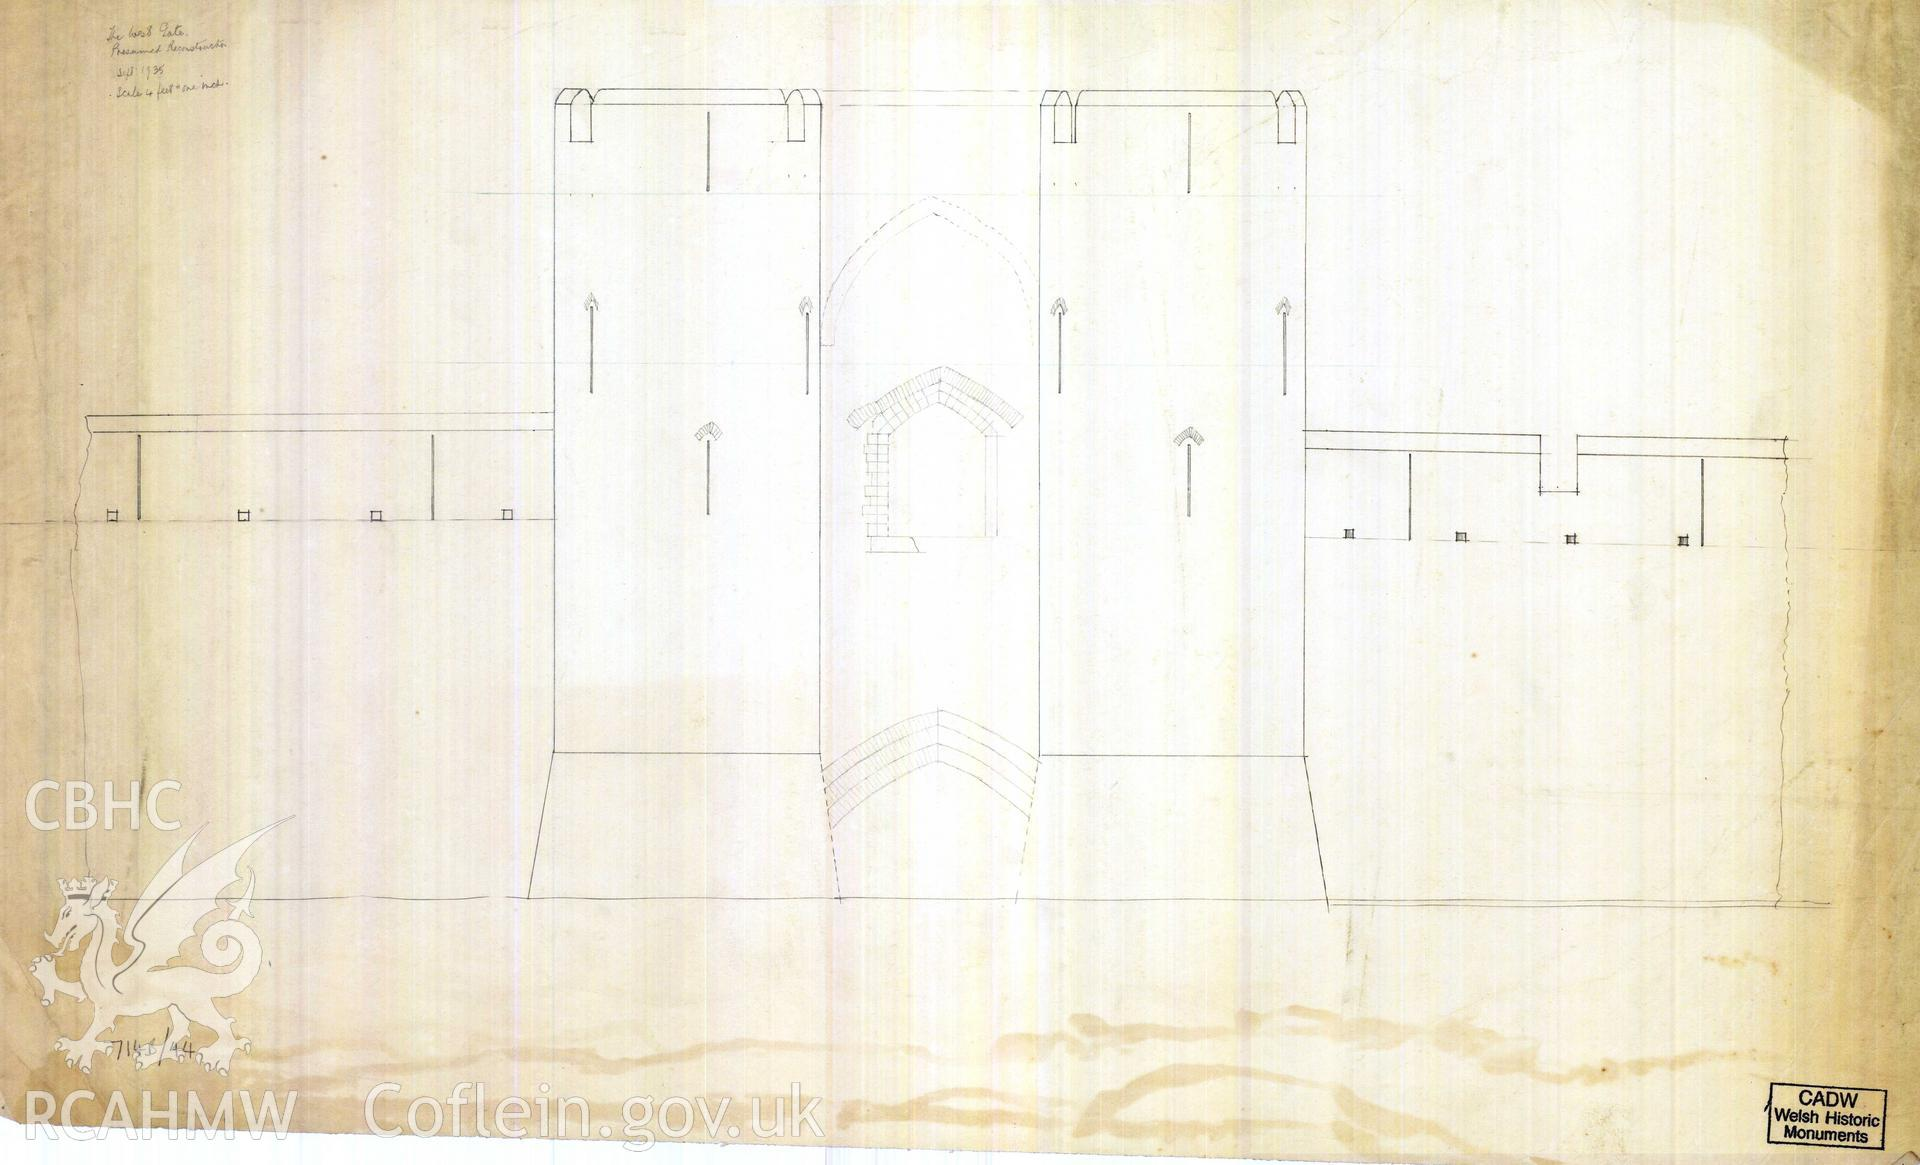 Digital copy of Cadw guardianship monument drawing of Caerphilly Castle. Mid W gate, W (ext) elev. Cadw ref. no: 714B/44. Scale 1:48. Original drawing withdrawn and returned to Cadw at their request.